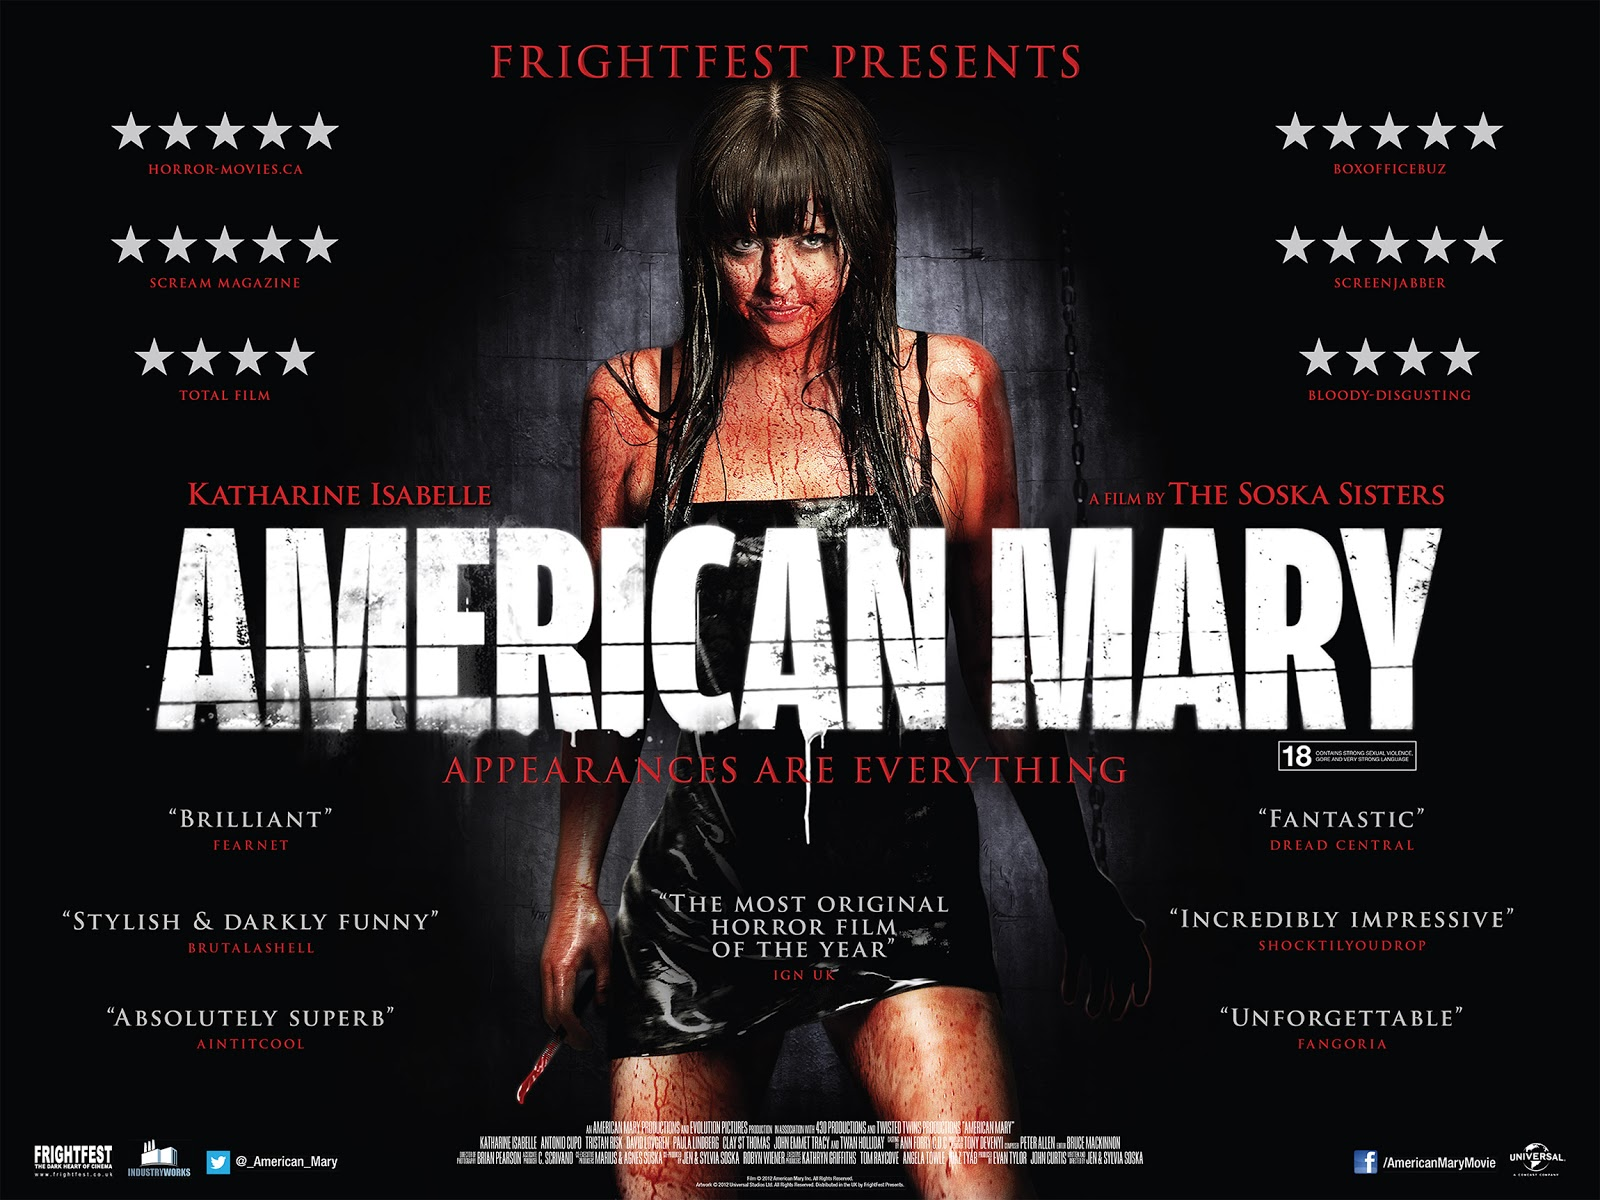 Lawless Jakarta Wallpaper uk Trailer For American Mary